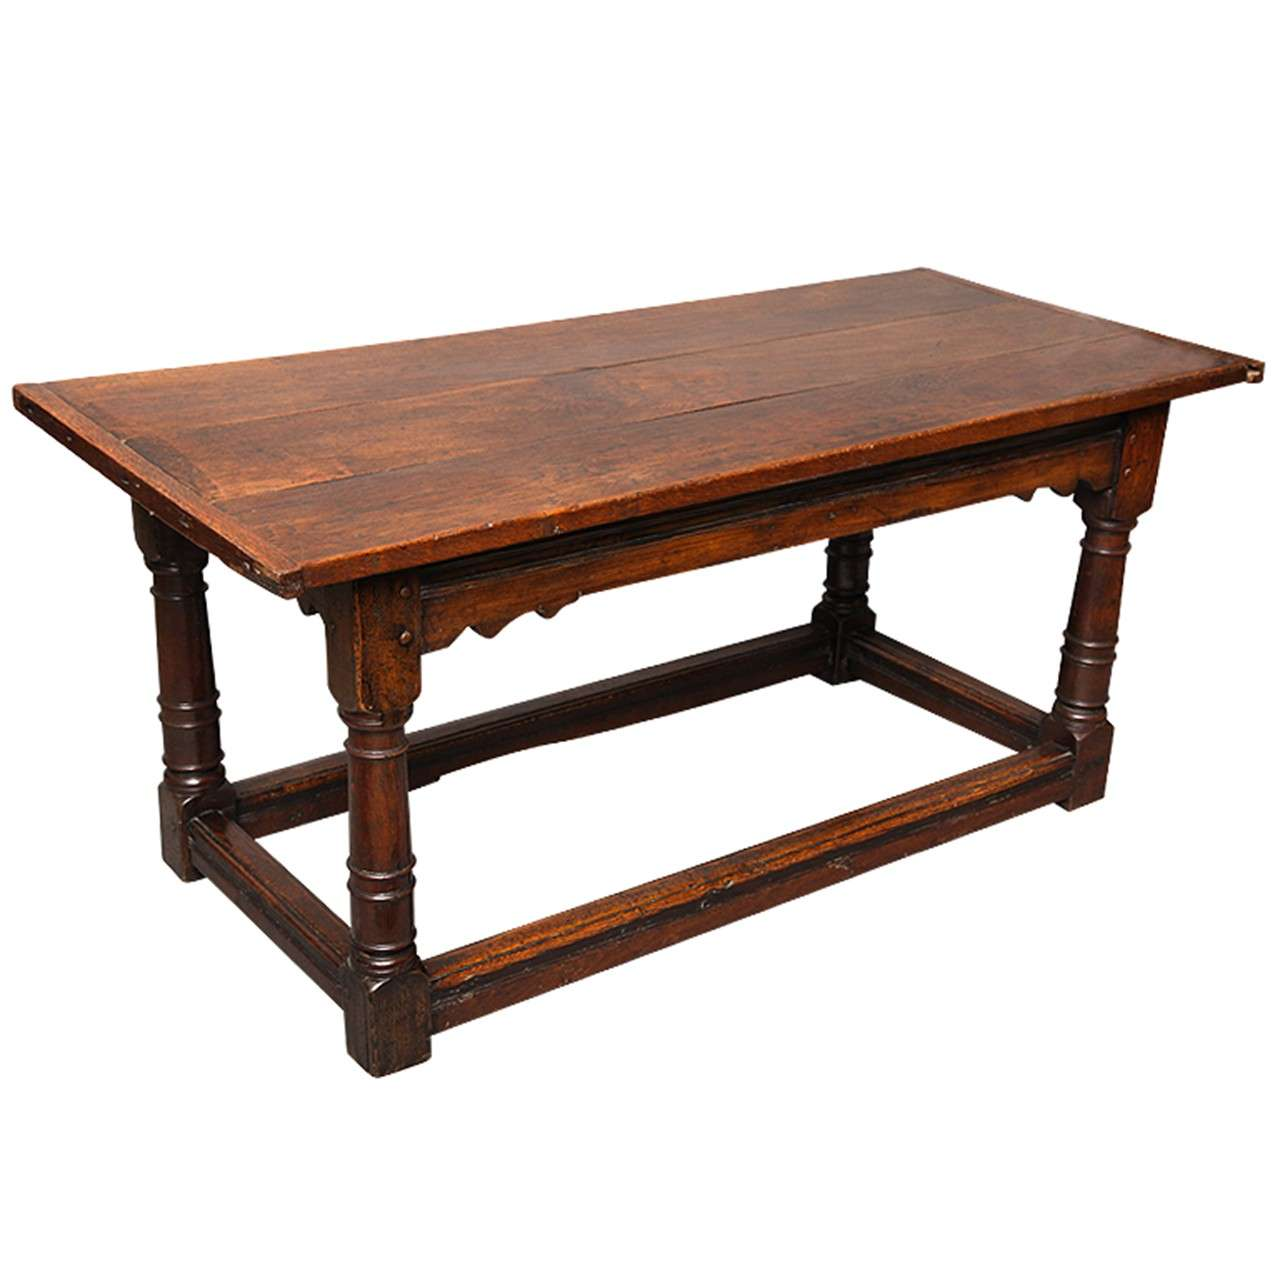 Exceptional 17th Century English Oak Refectory Table